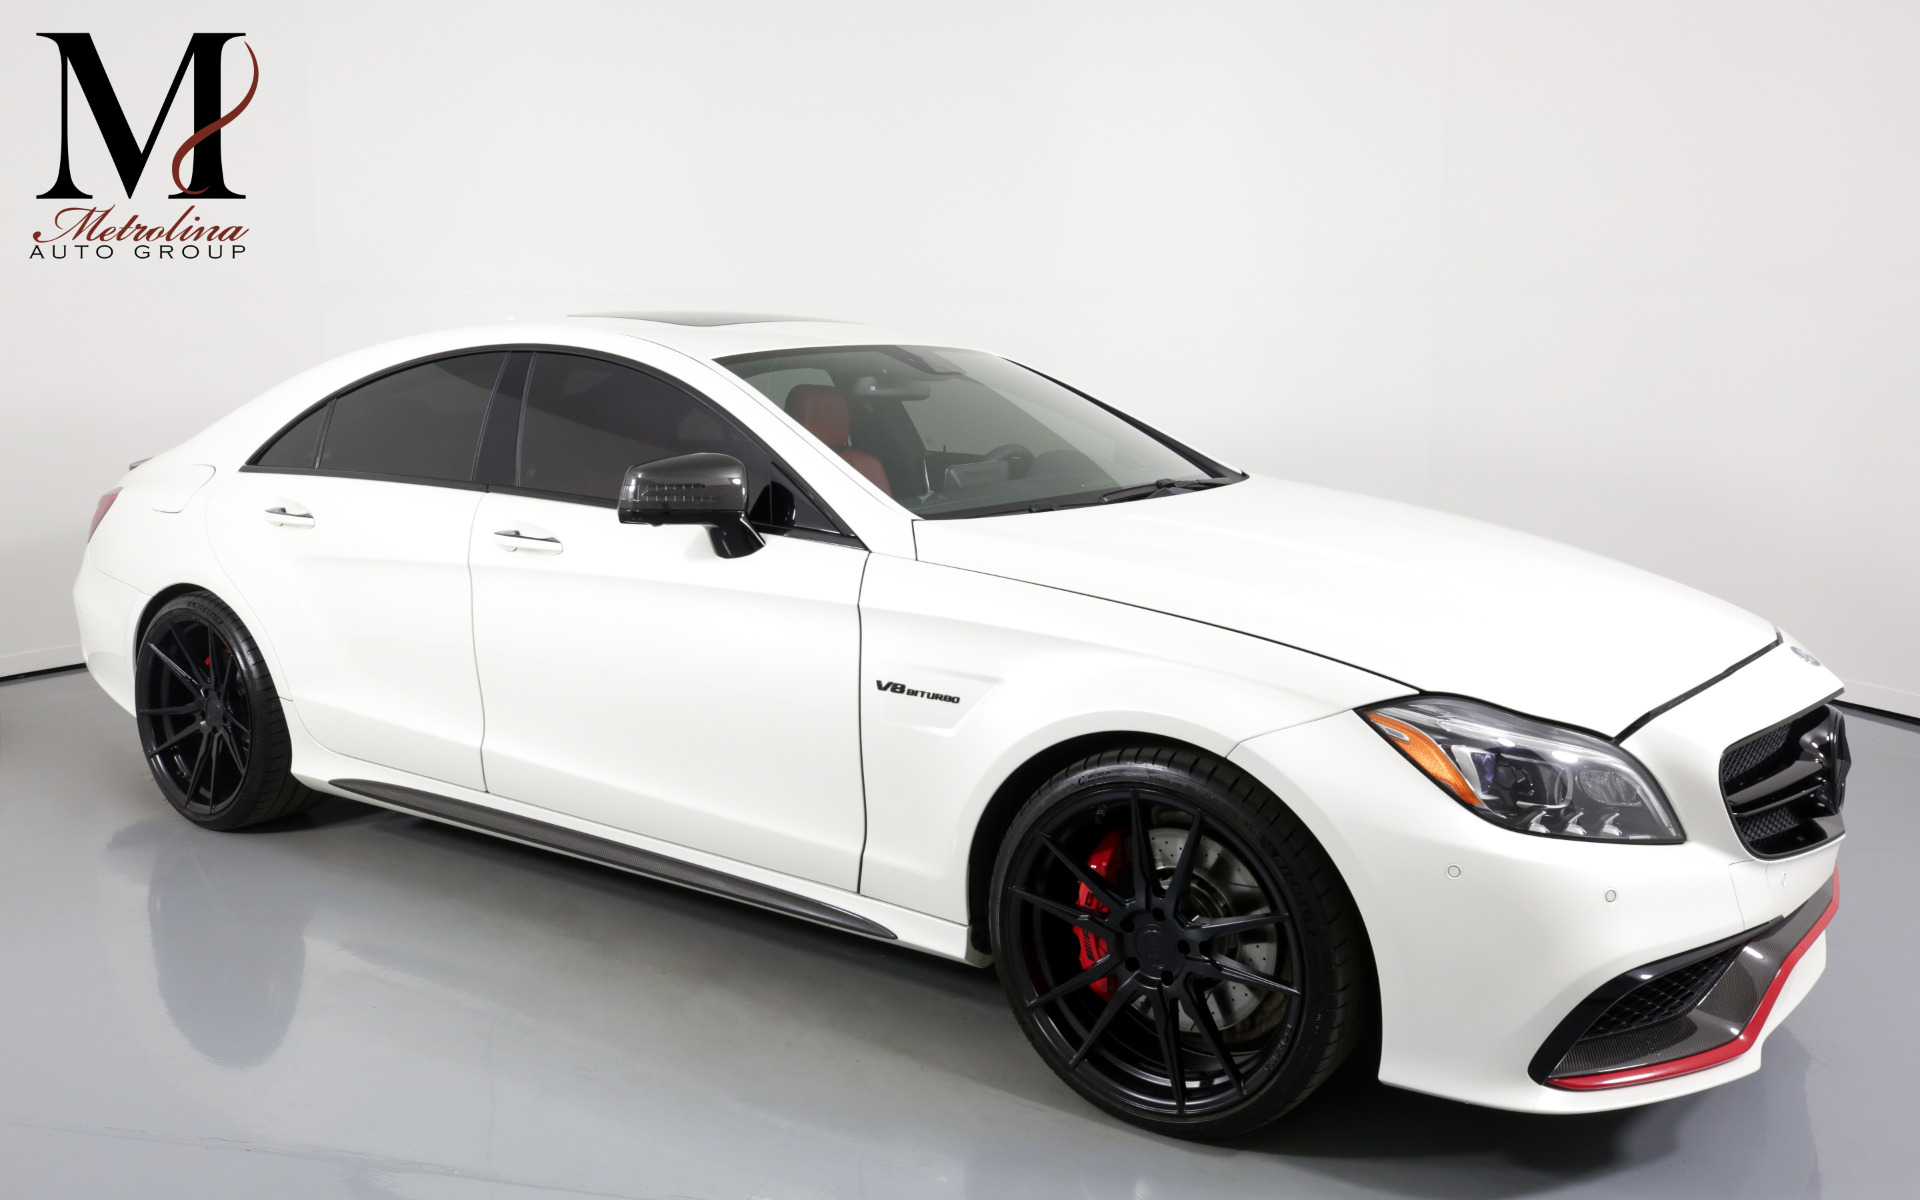 Used 2016 Mercedes-Benz CLS AMG CLS 63 S for sale $61,996 at Metrolina Auto Group in Charlotte NC 28217 - 1